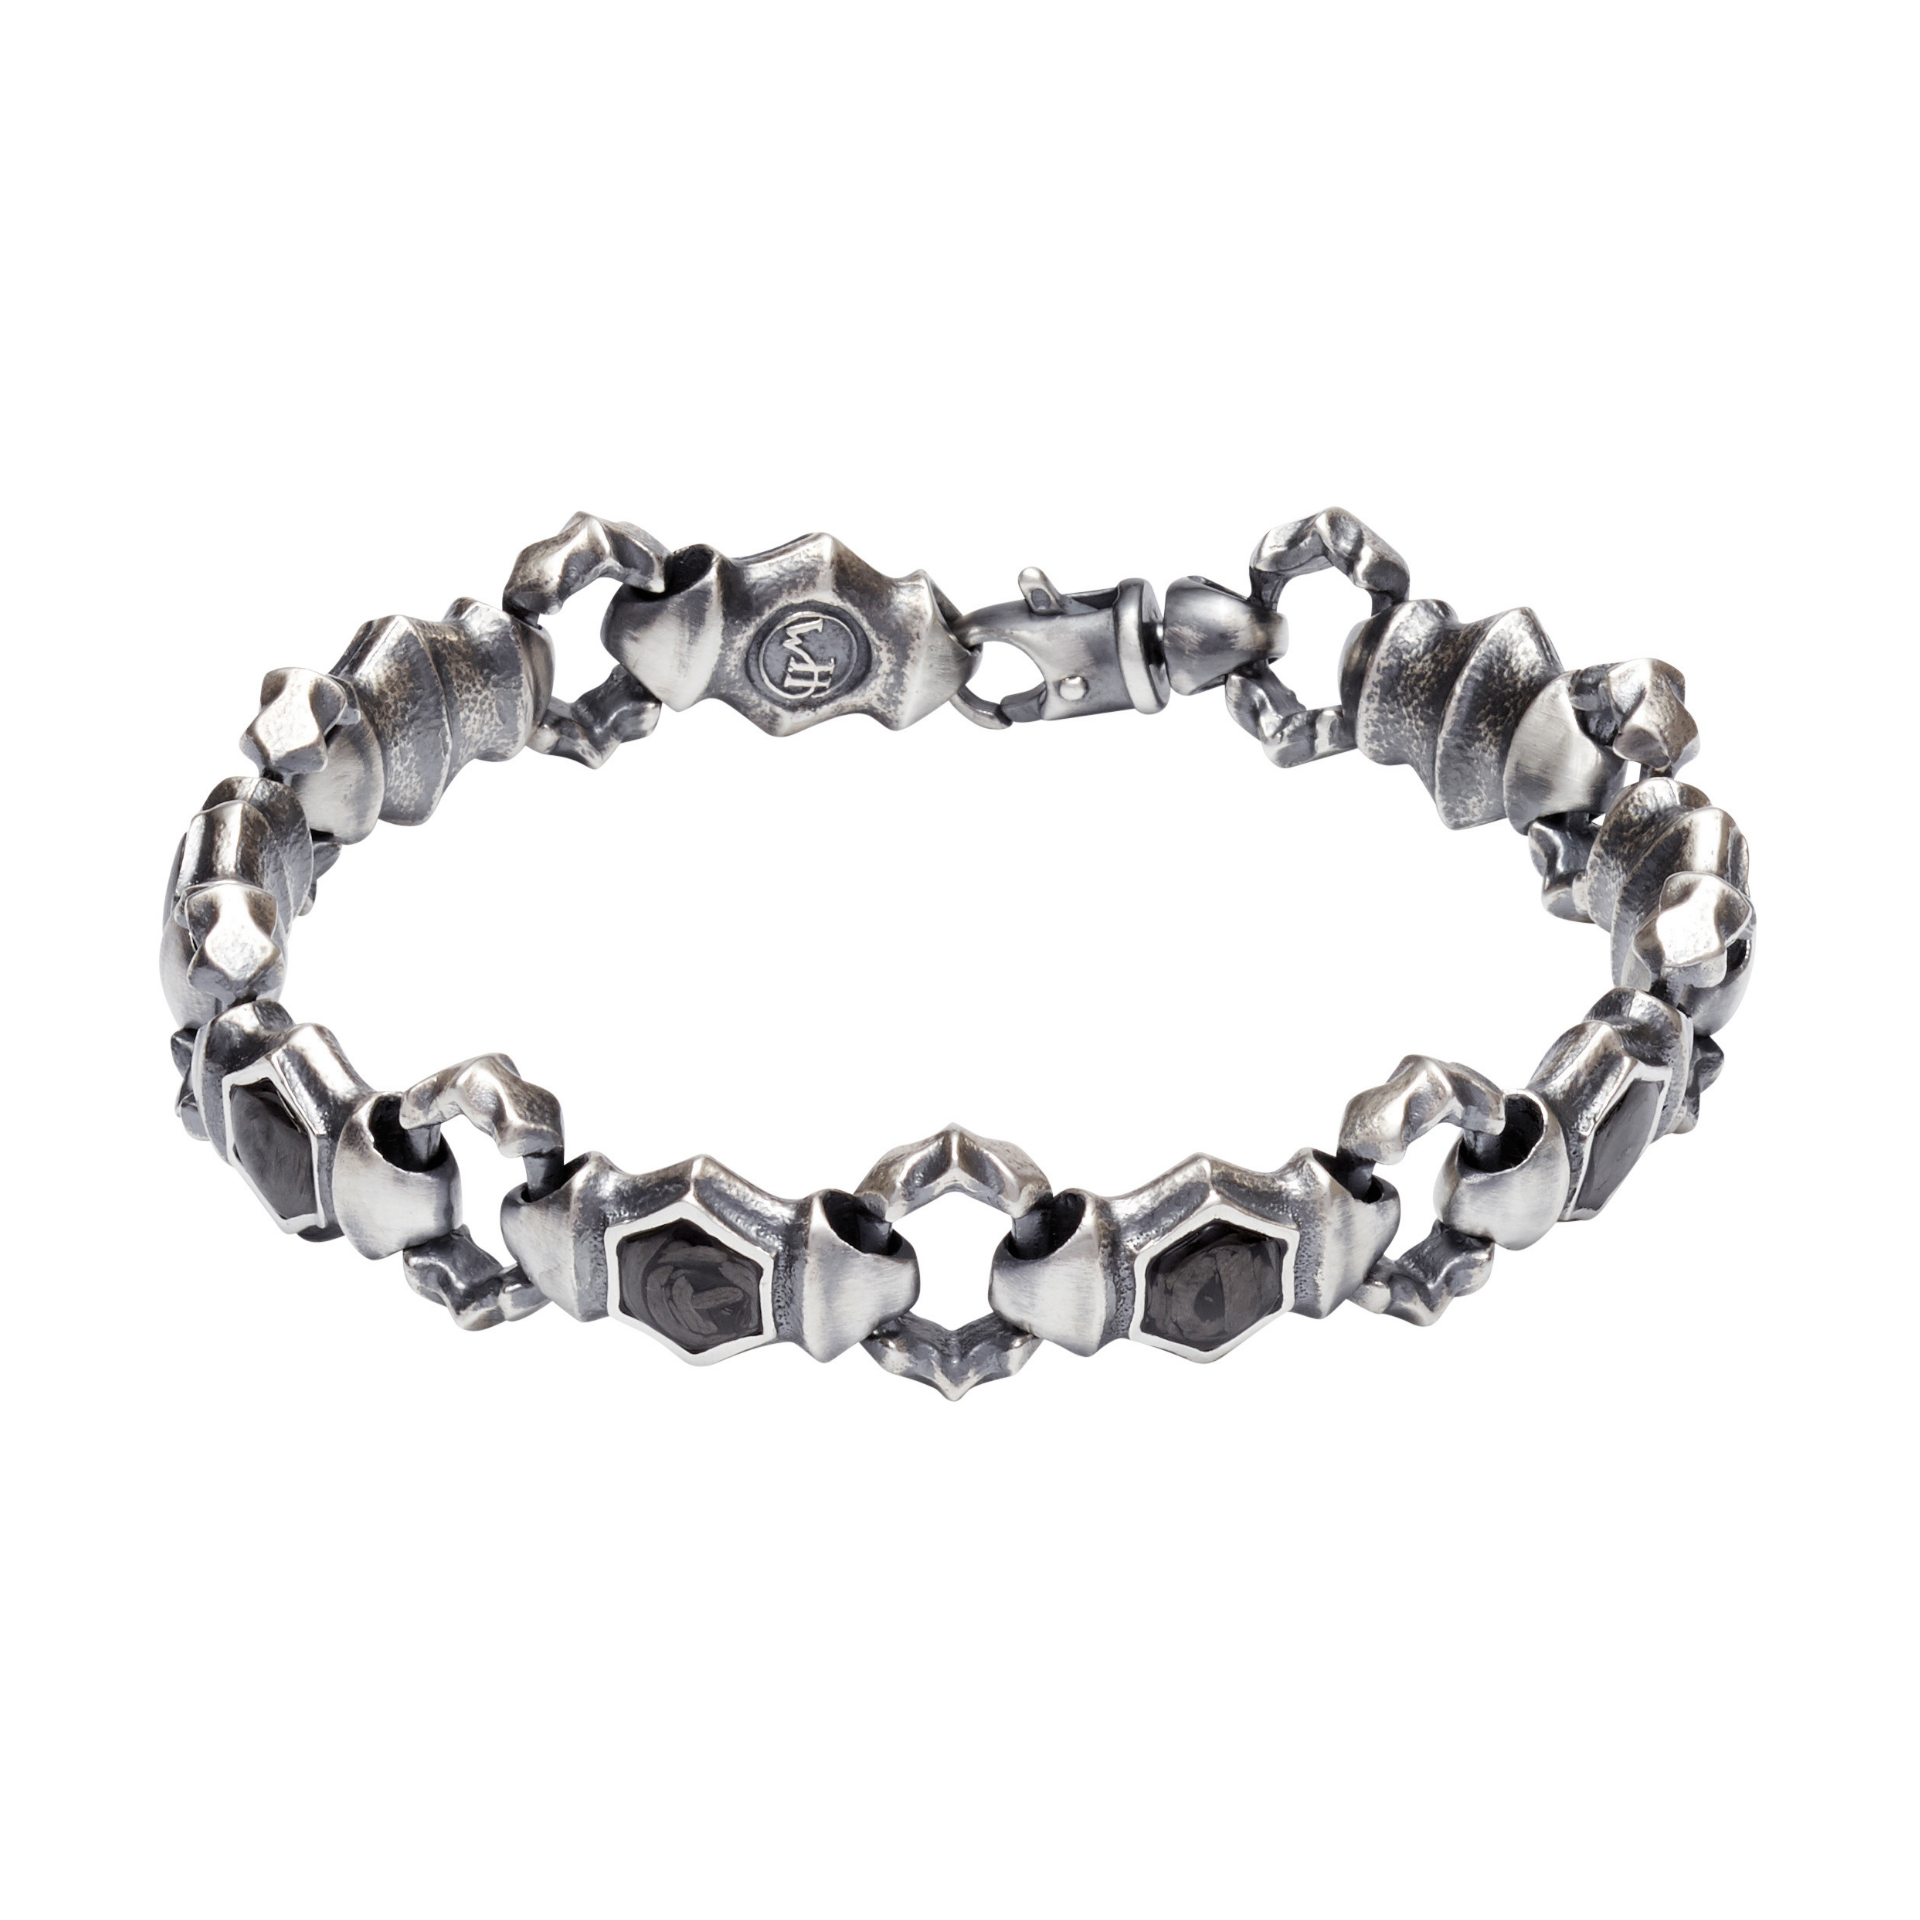 William Henry 'Carbon Quest' Sterling Silver & Crushed Carbon Inlay Masculine Bracelet